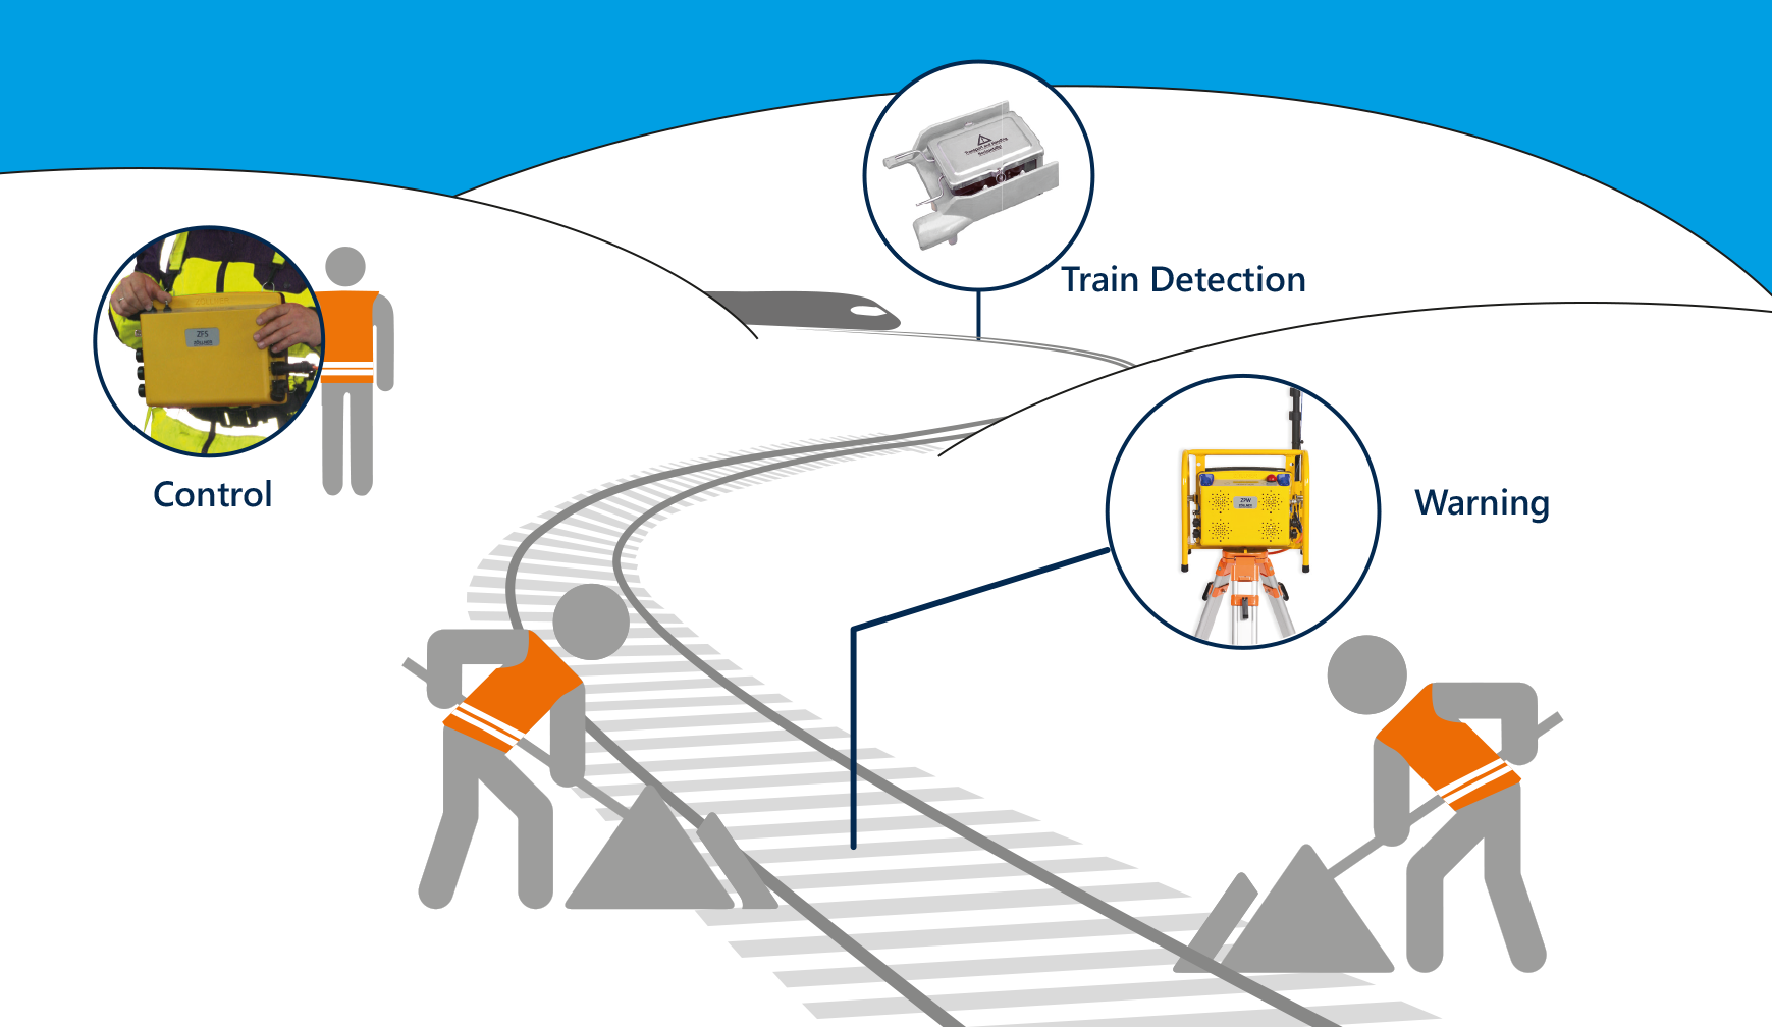 Zöllner automatic track warning system: MFW system layout